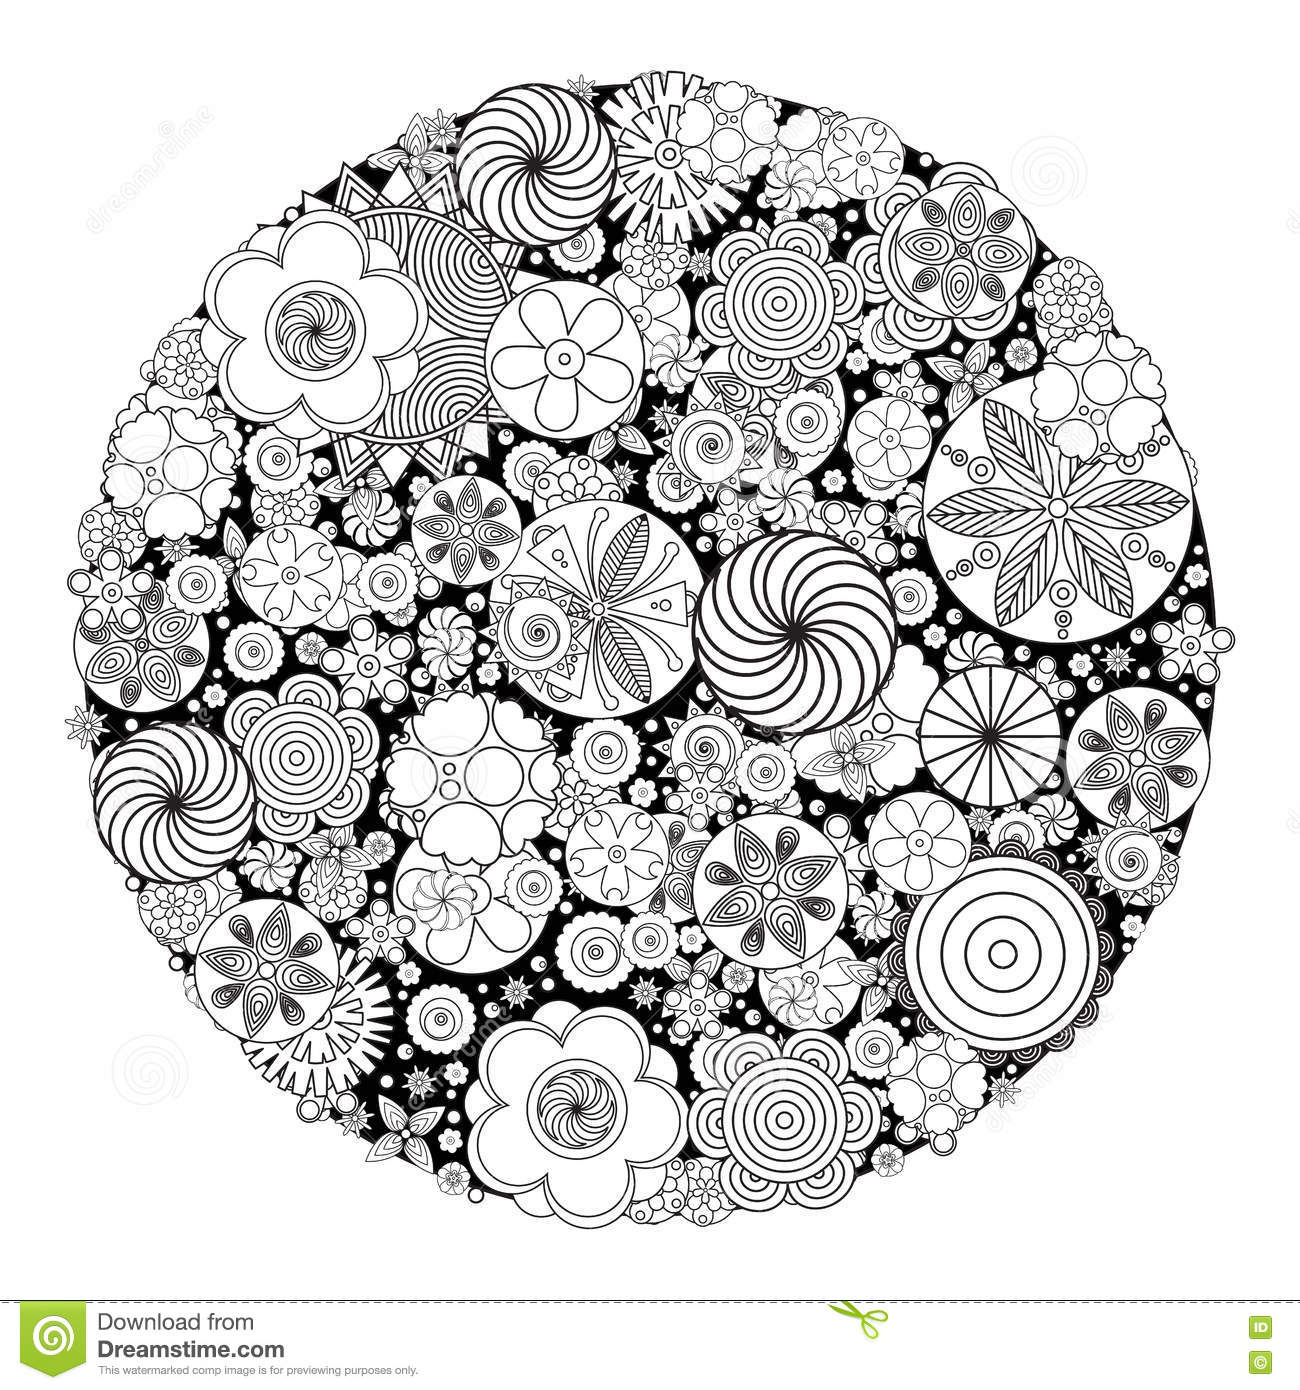 Flower designs coloring book - Flower Design For Coloring Book For Grown Up Stock Vector